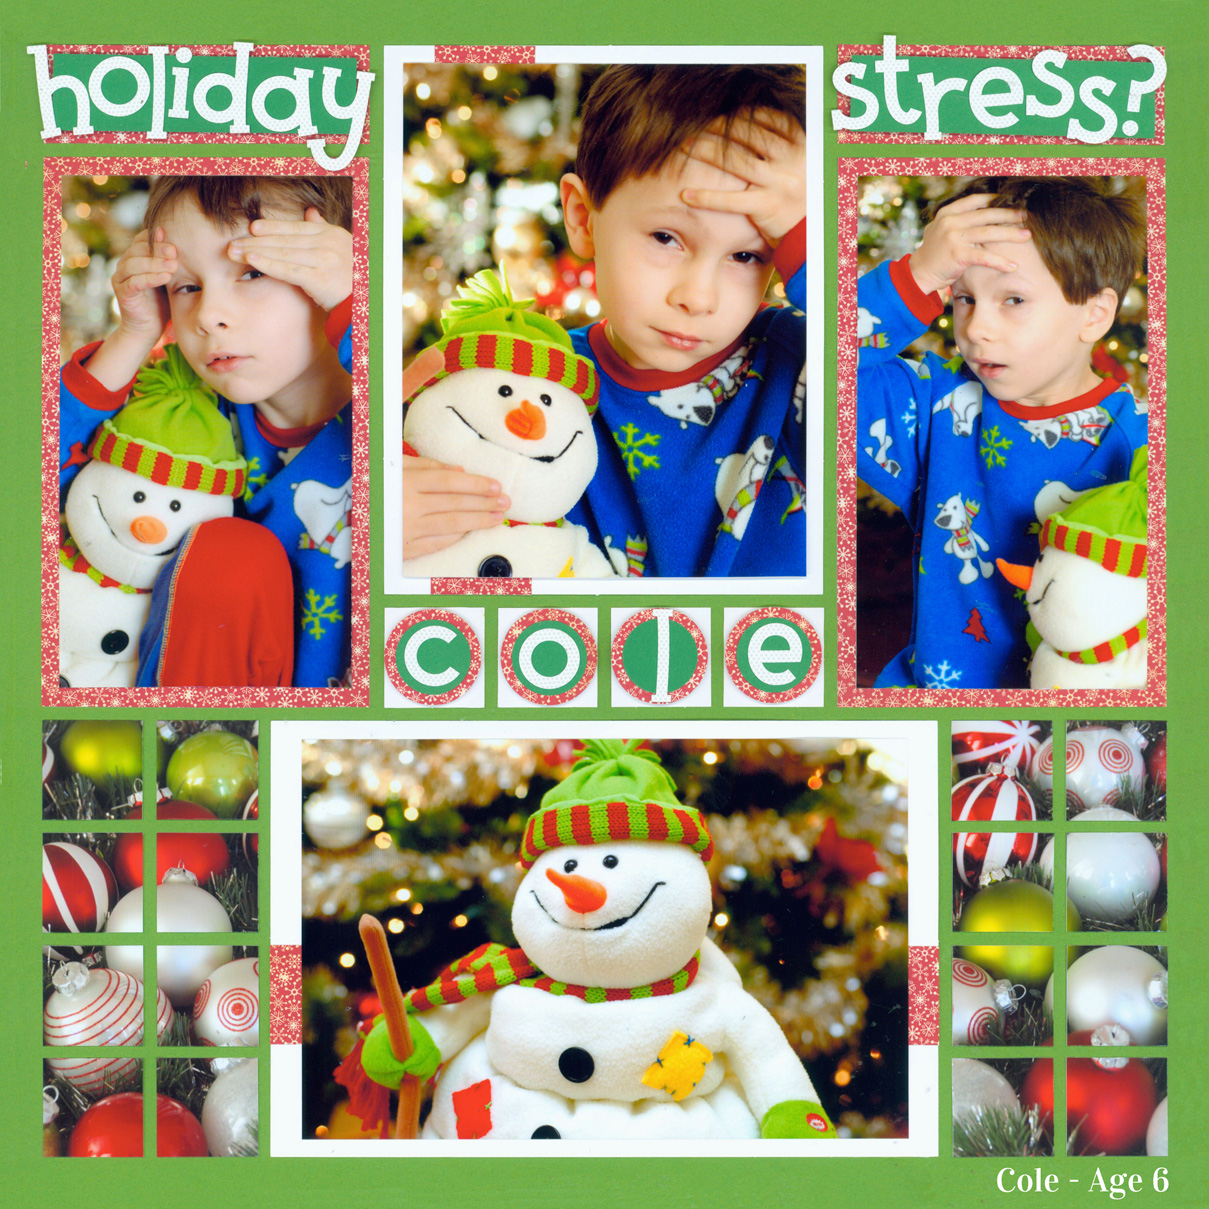 Holiday Scrapbook Pages - Holiday Stress